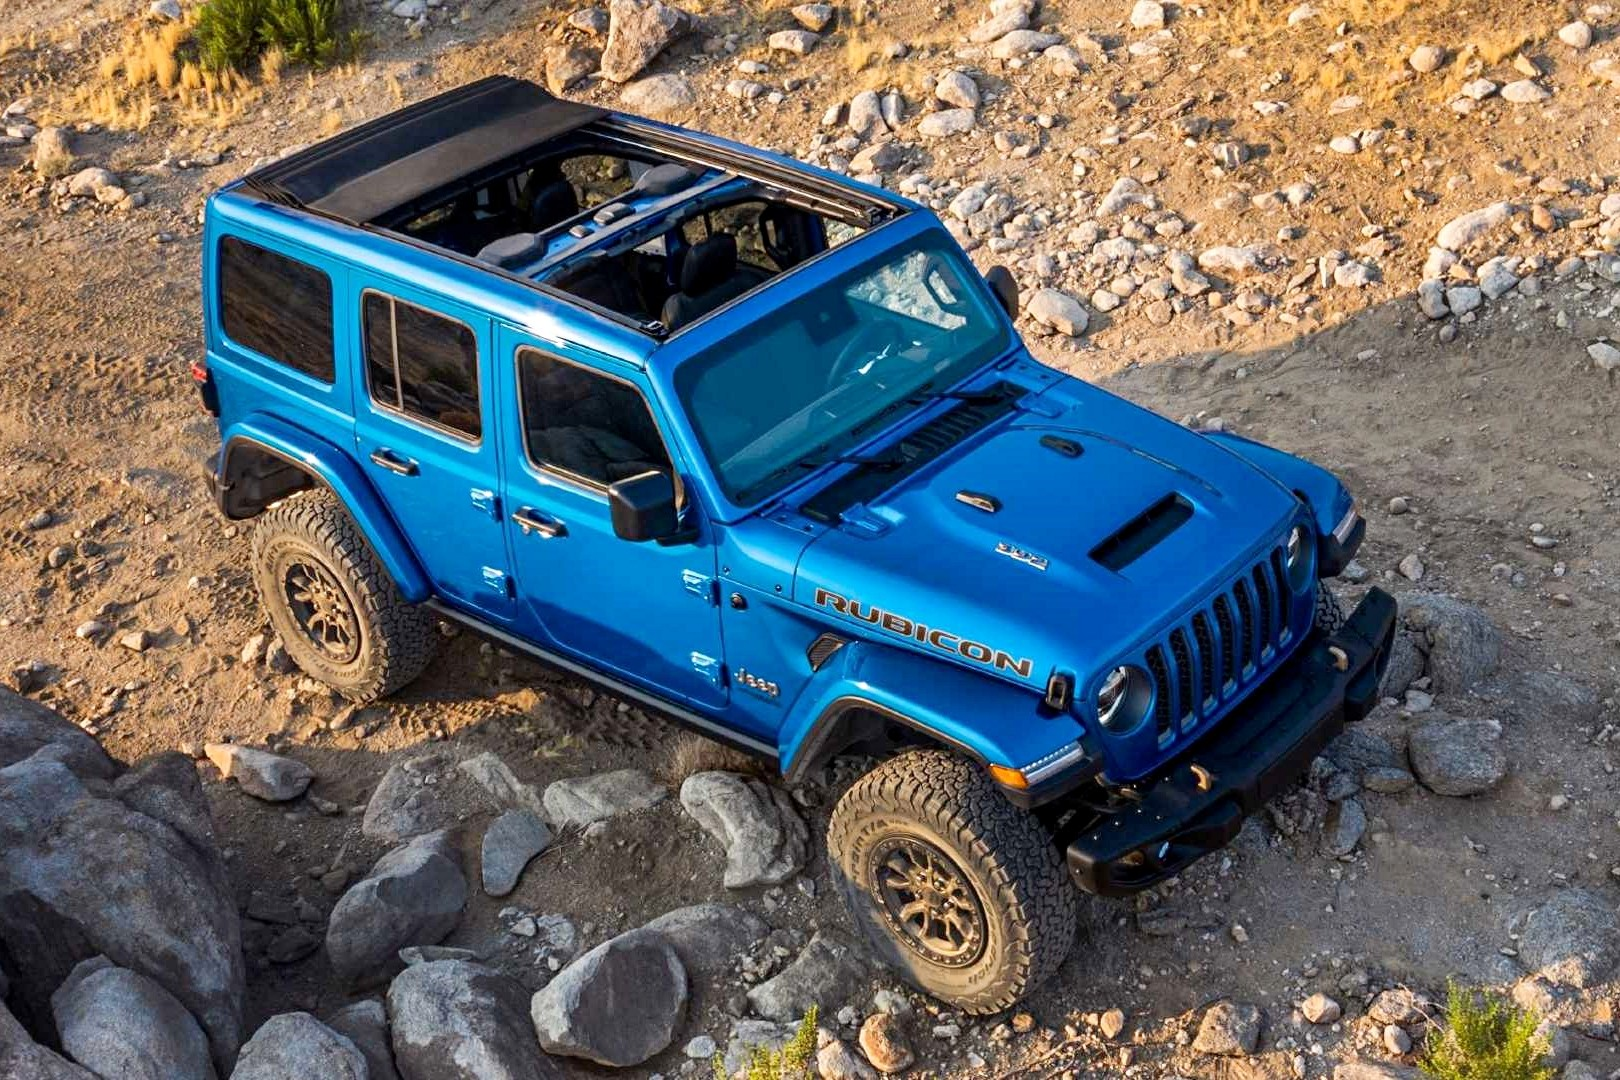 Jeep has just revealed the starting price of its V8-packing Wrangler Rubicon 392 Launch Edition. At U.S. $73,500, the car costs more than the Ram TRX and roughly two and a half times as much as an entry-level Wrangler Sport V6.